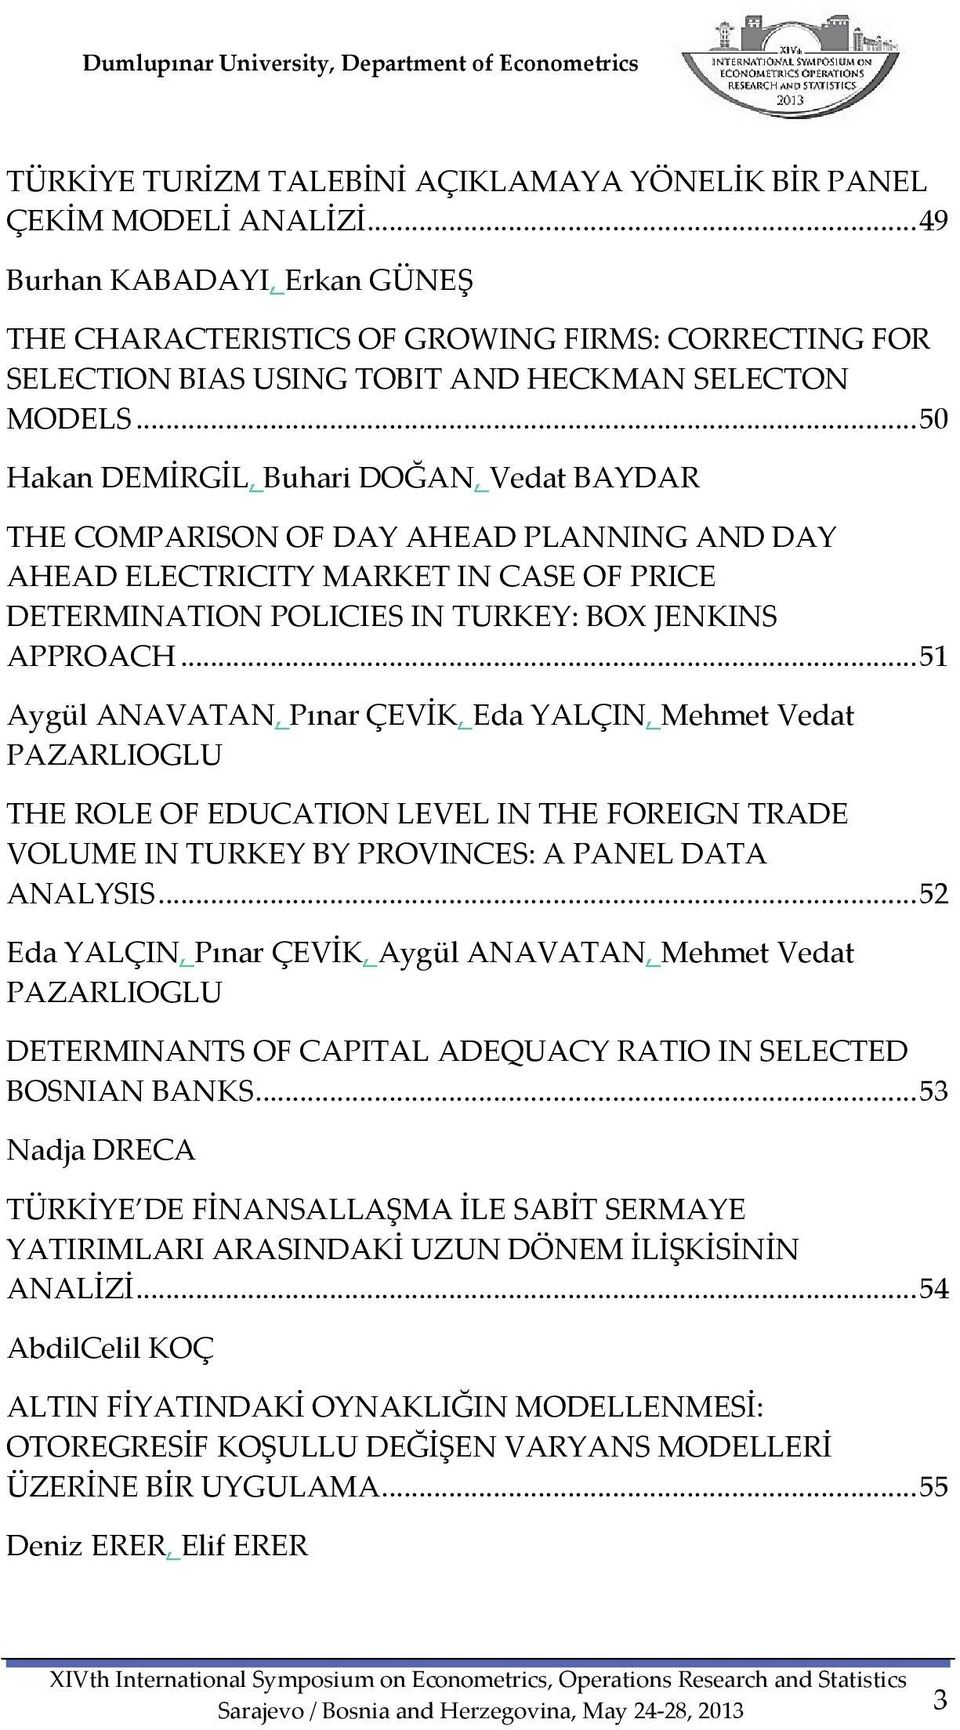 .. 50 Hakan DEMİRGİL, Buhari DOĞAN, Vedat BAYDAR THE COMPARISON OF DAY AHEAD PLANNING AND DAY AHEAD ELECTRICITY MARKET IN CASE OF PRICE DETERMINATION POLICIES IN TURKEY: BOX JENKINS APPROACH.